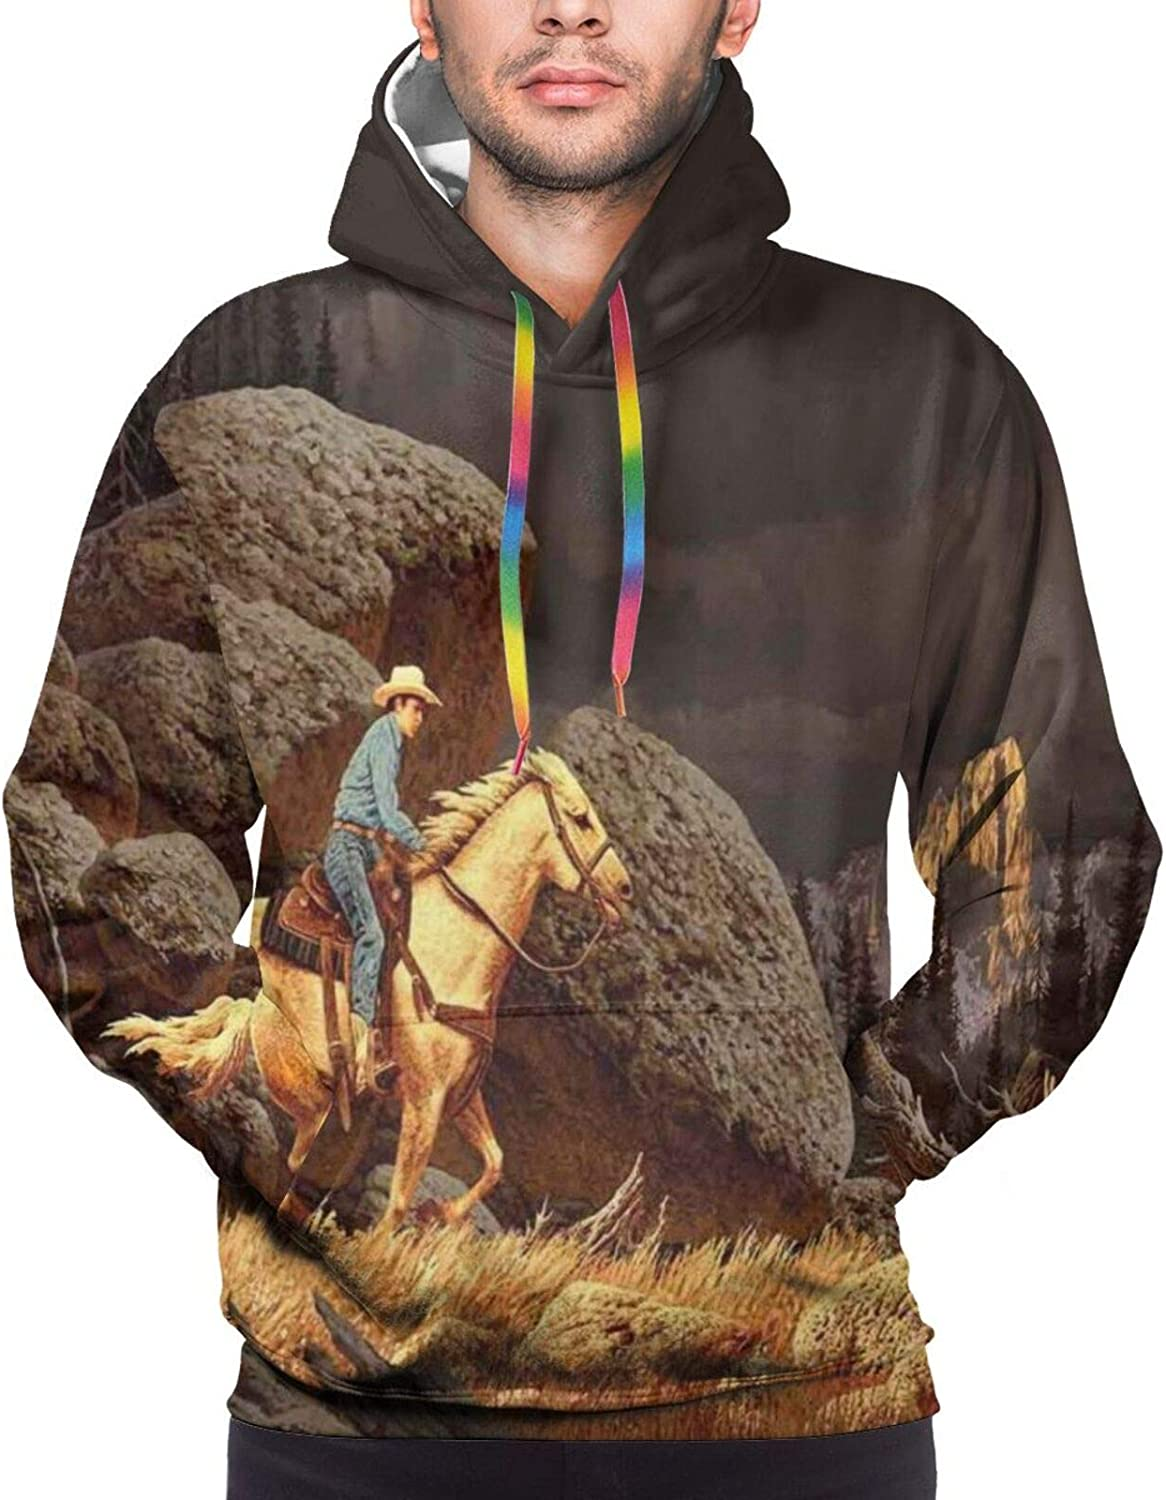 Men's Hoodies Sweatshirts,A Real Photo Image of Four Killer Whales Coming Out of The Sea Artwork